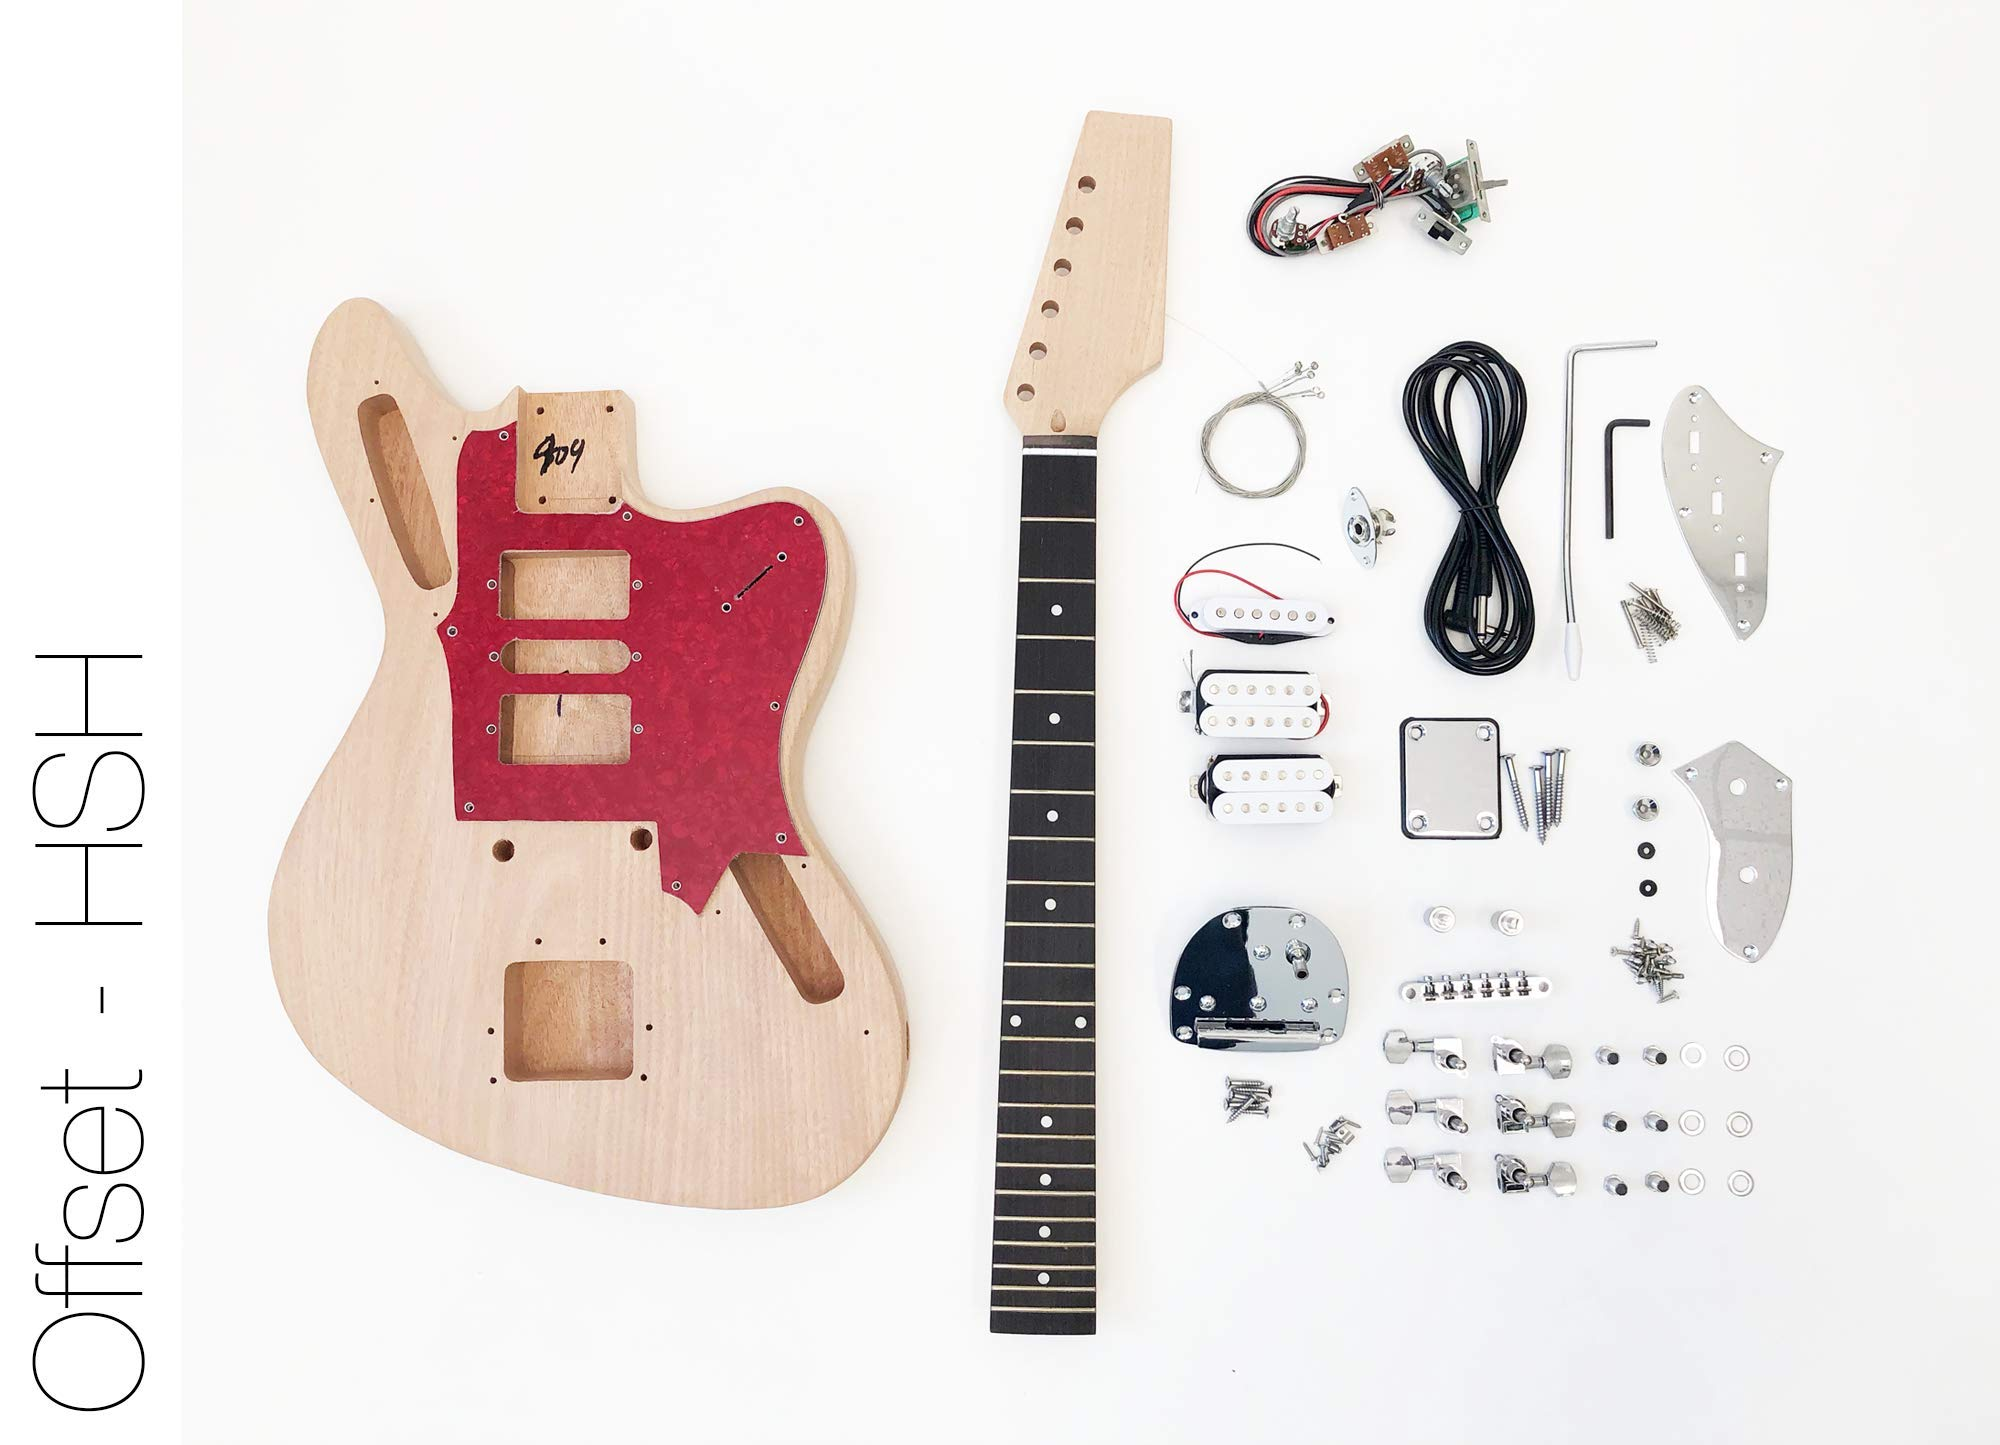 Cheap DIY Electric Guitar Kit Offset HSH Build Your Own Guitar Kit Black Friday & Cyber Monday 2019